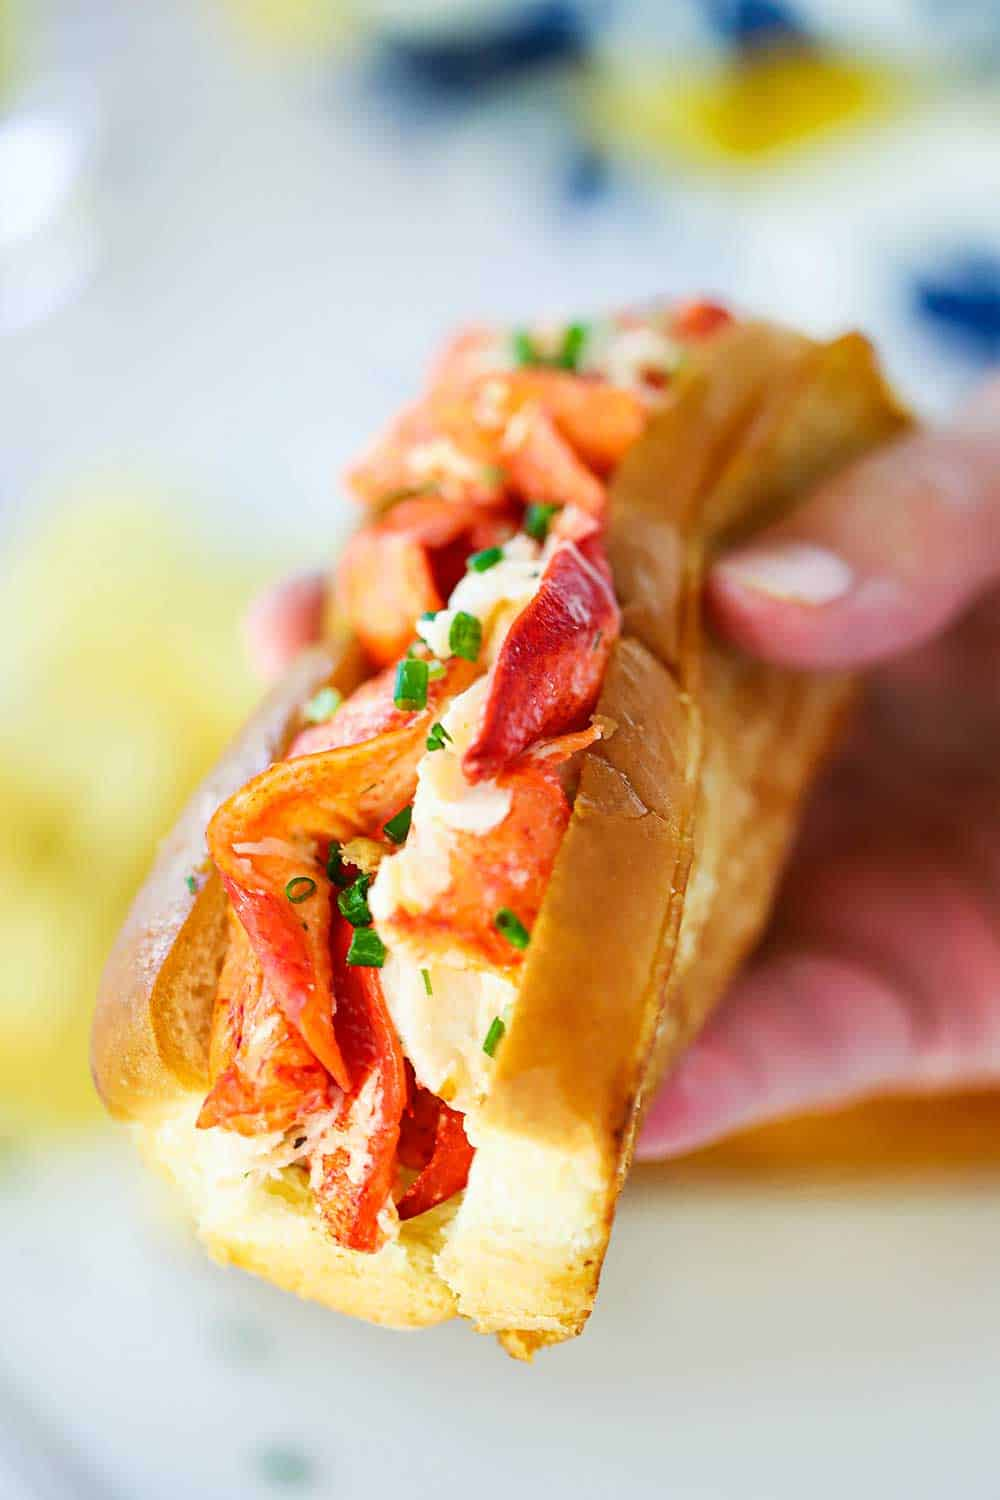 A hand holding a lobster roll with lots of pink lobster meat and a toasty bun right in your face.